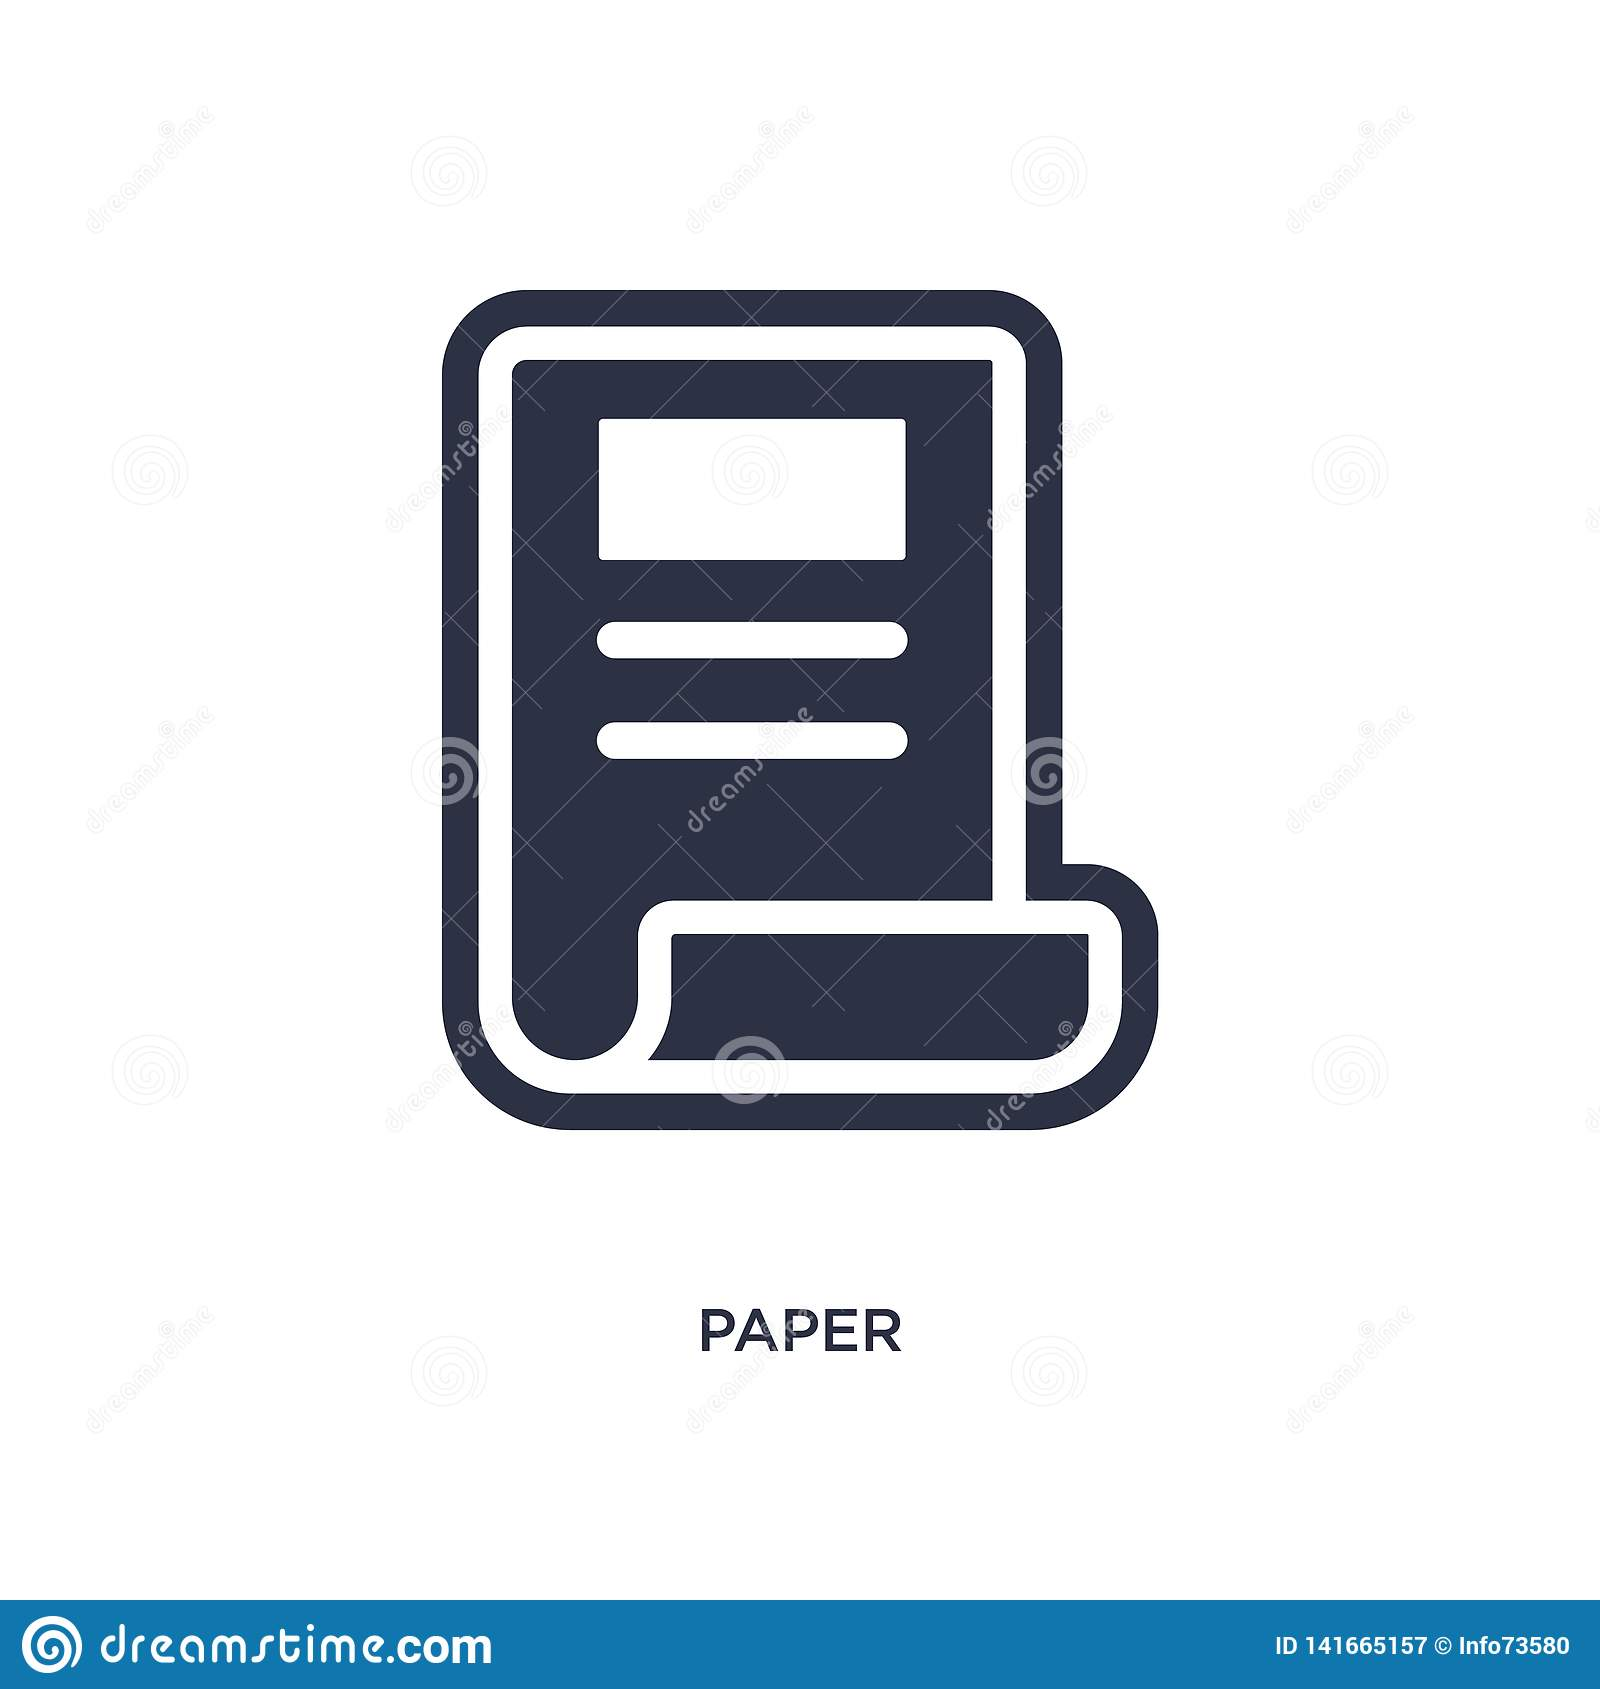 paper icon on white background. Simple element illustration from history concept